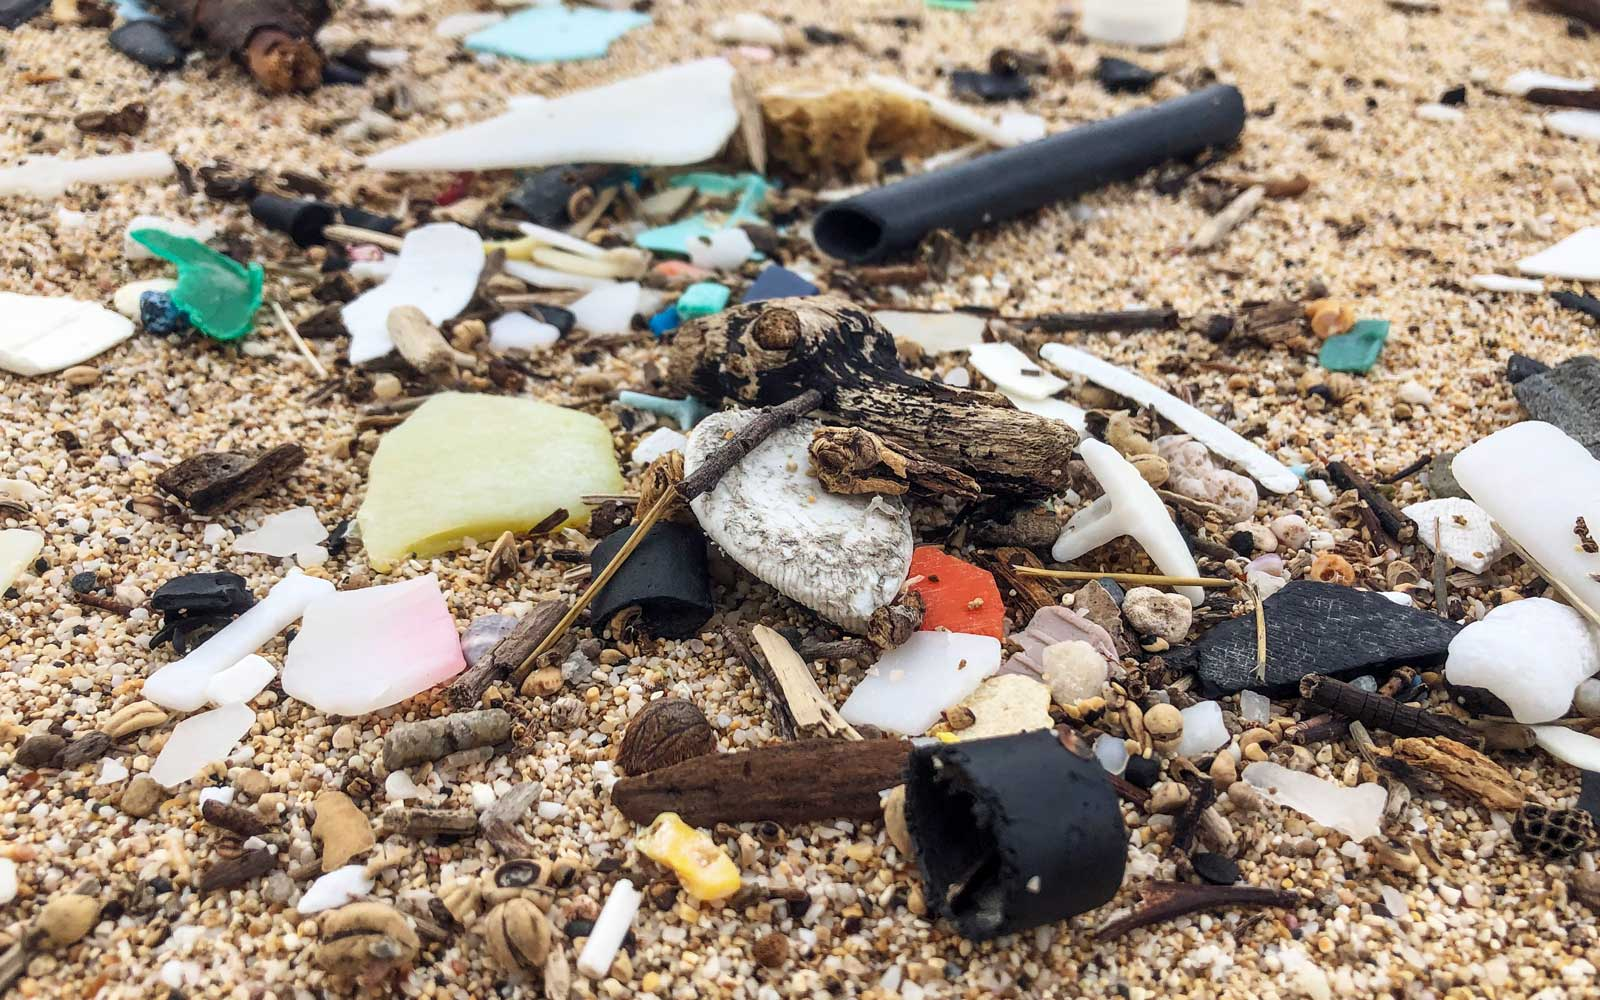 Plastic in Hawaii beach sand